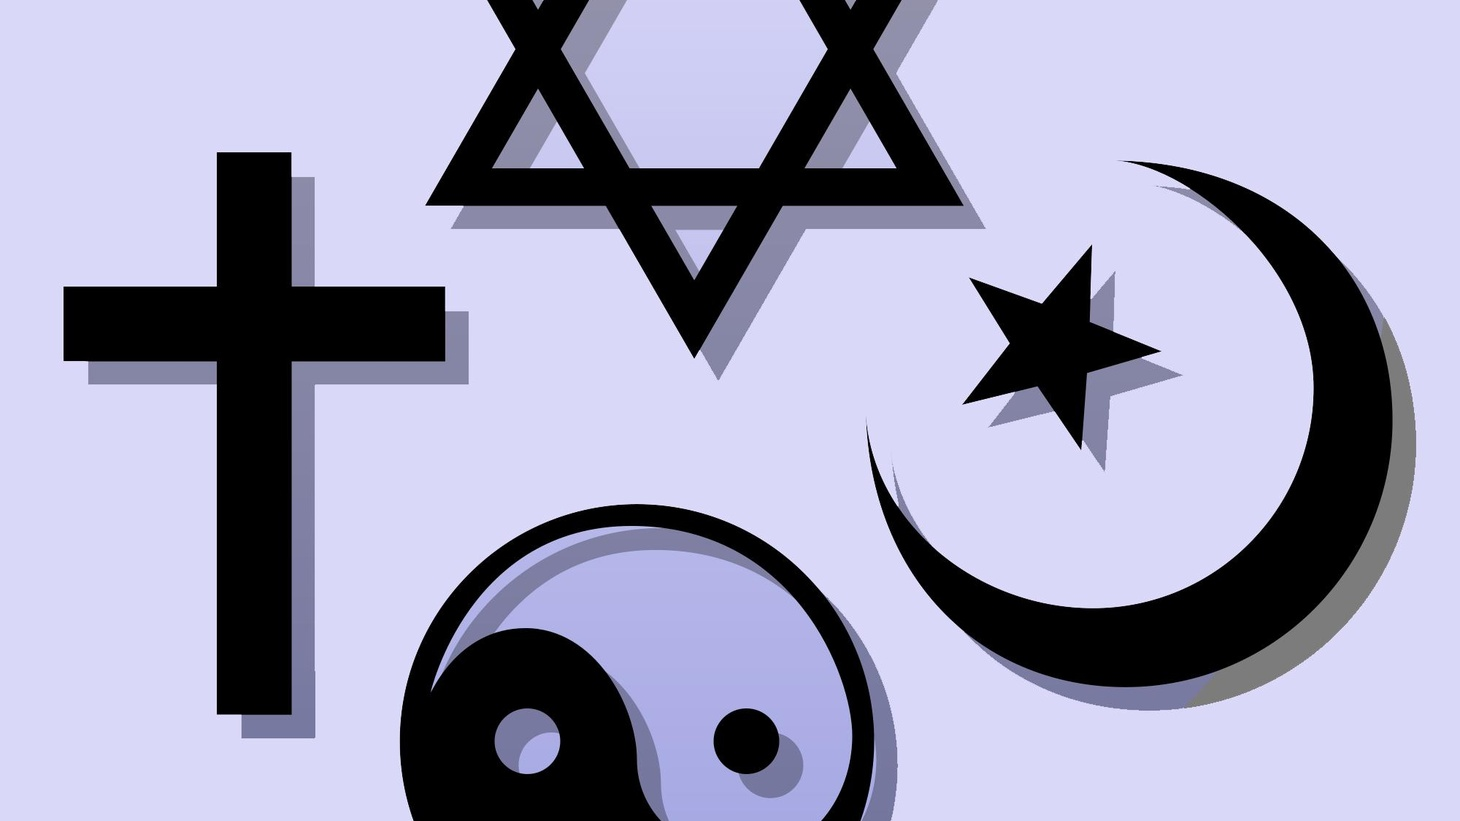 The US is one of the world's most religious countries, but American religion is changing. Does it unify or divide? Will atheists be more accepted or more ostracized?